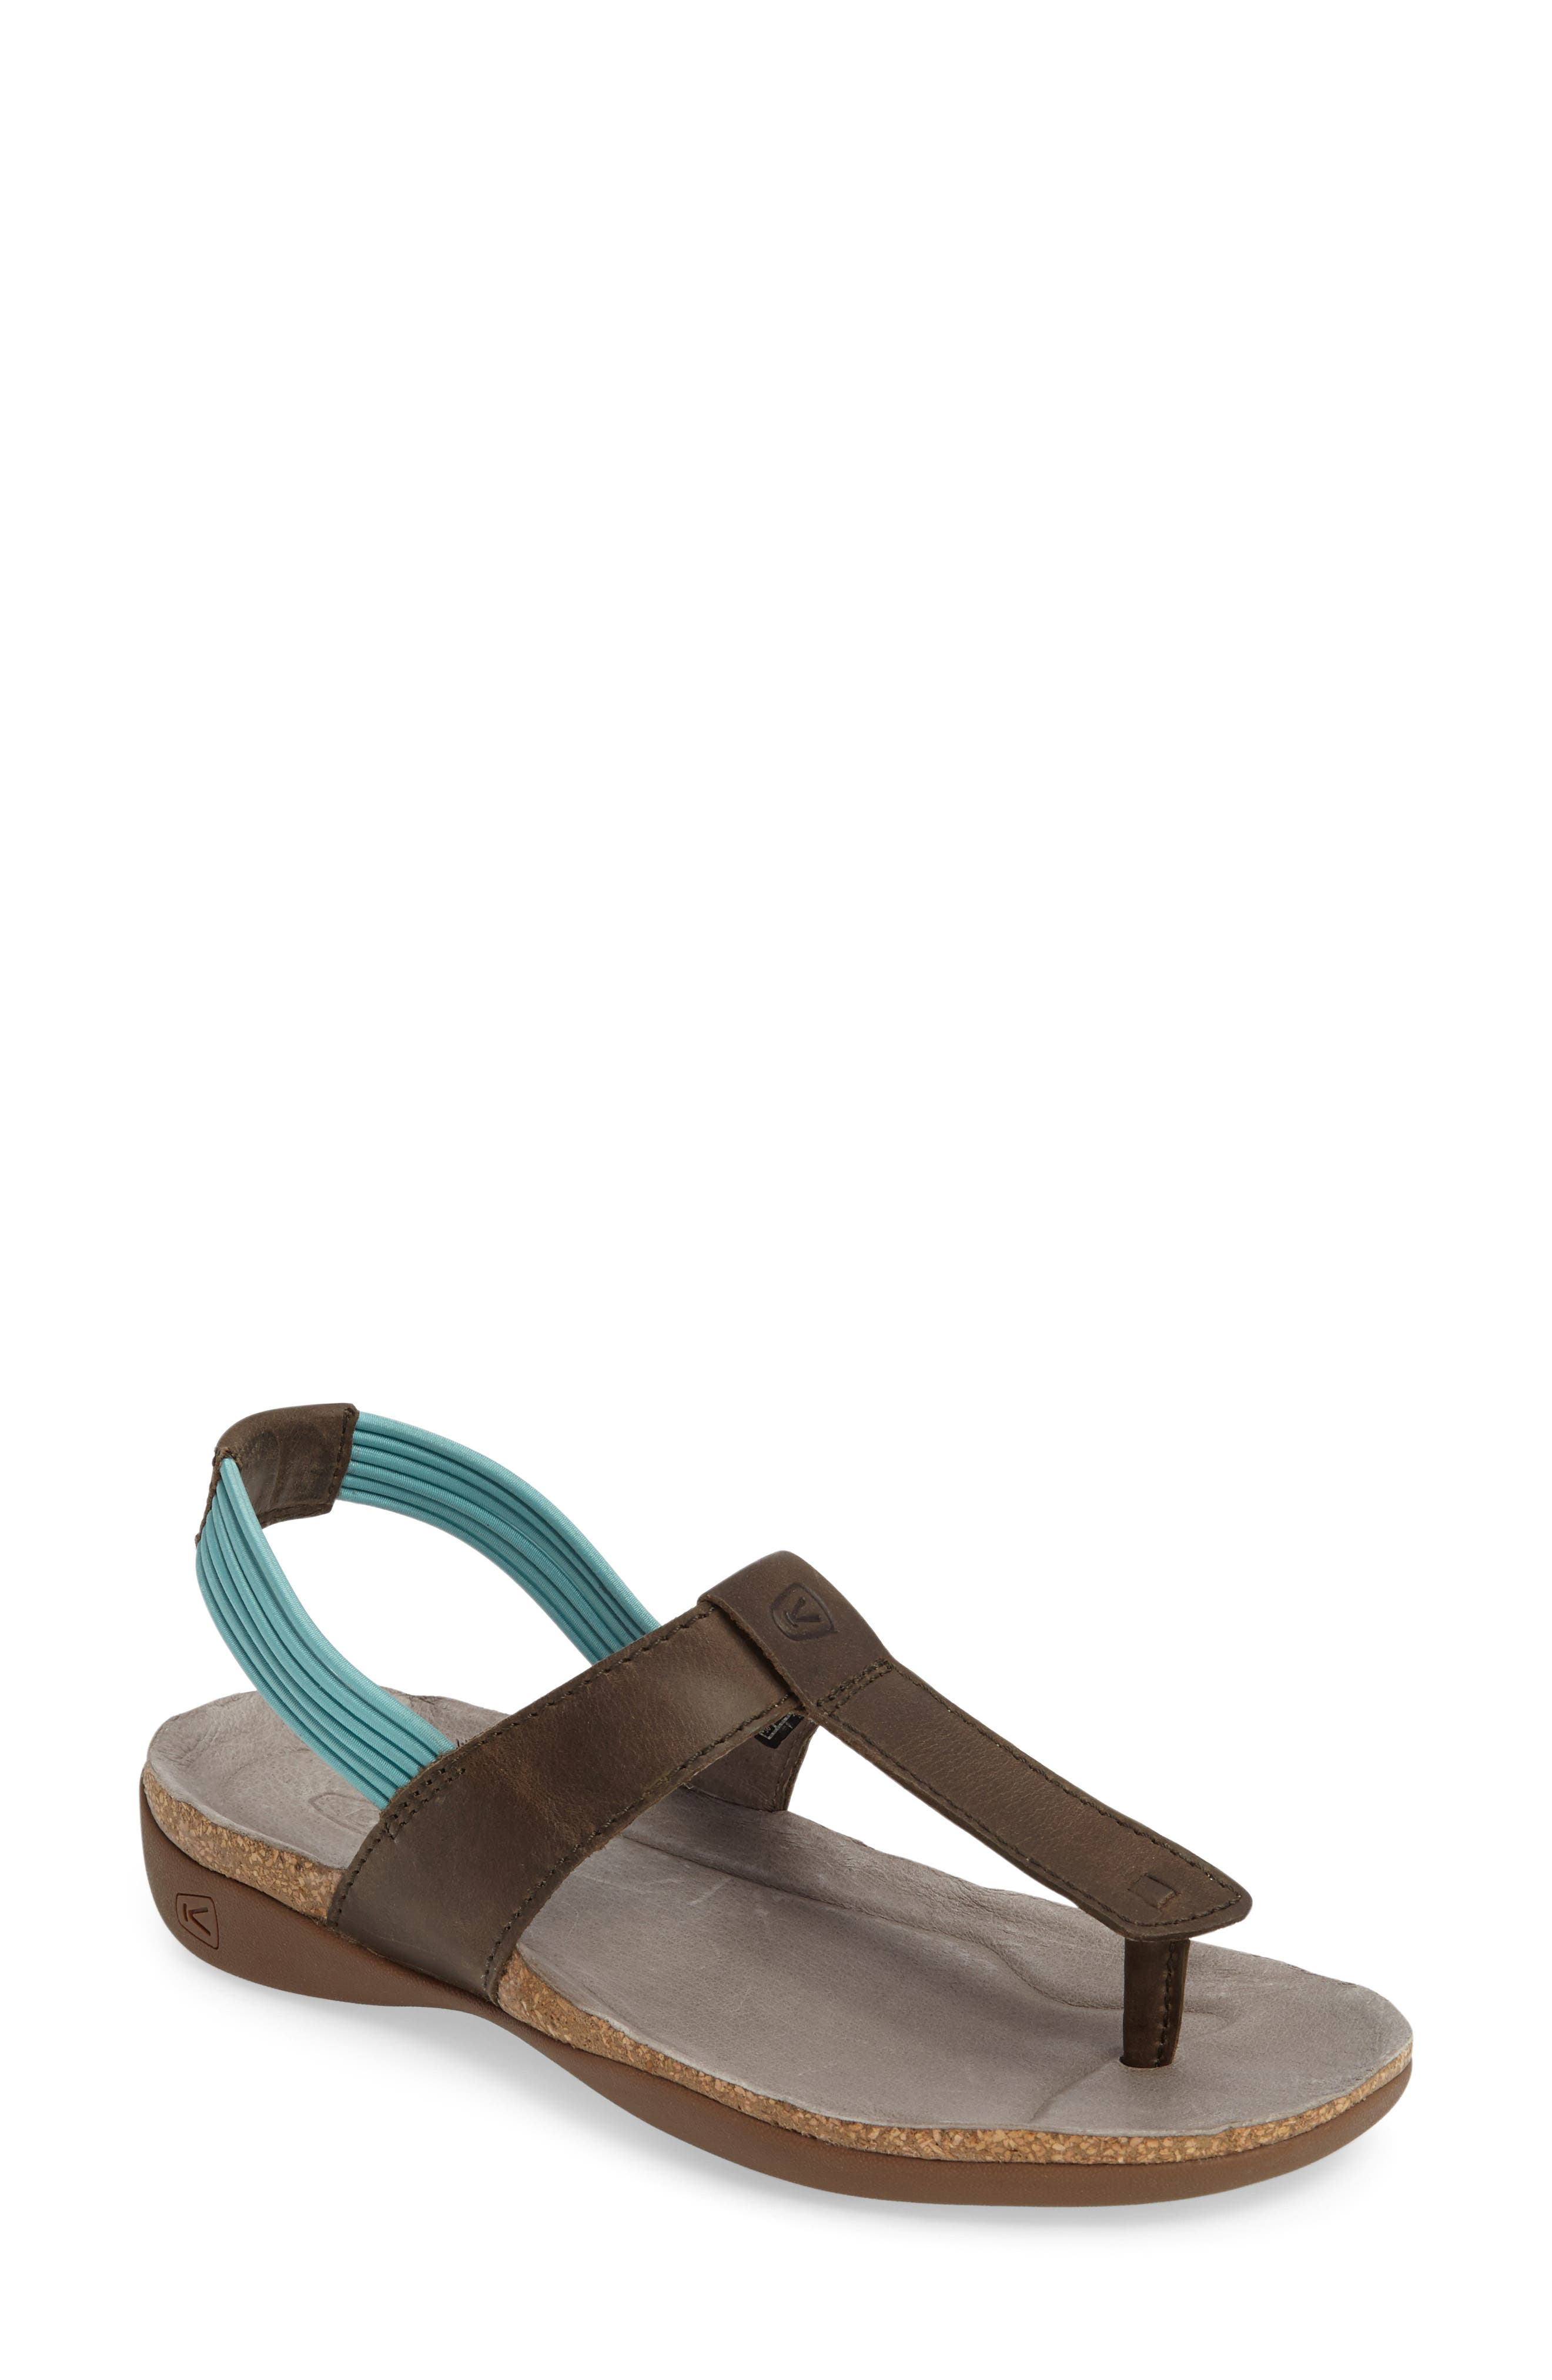 KEEN 'Dauntless' Sandal